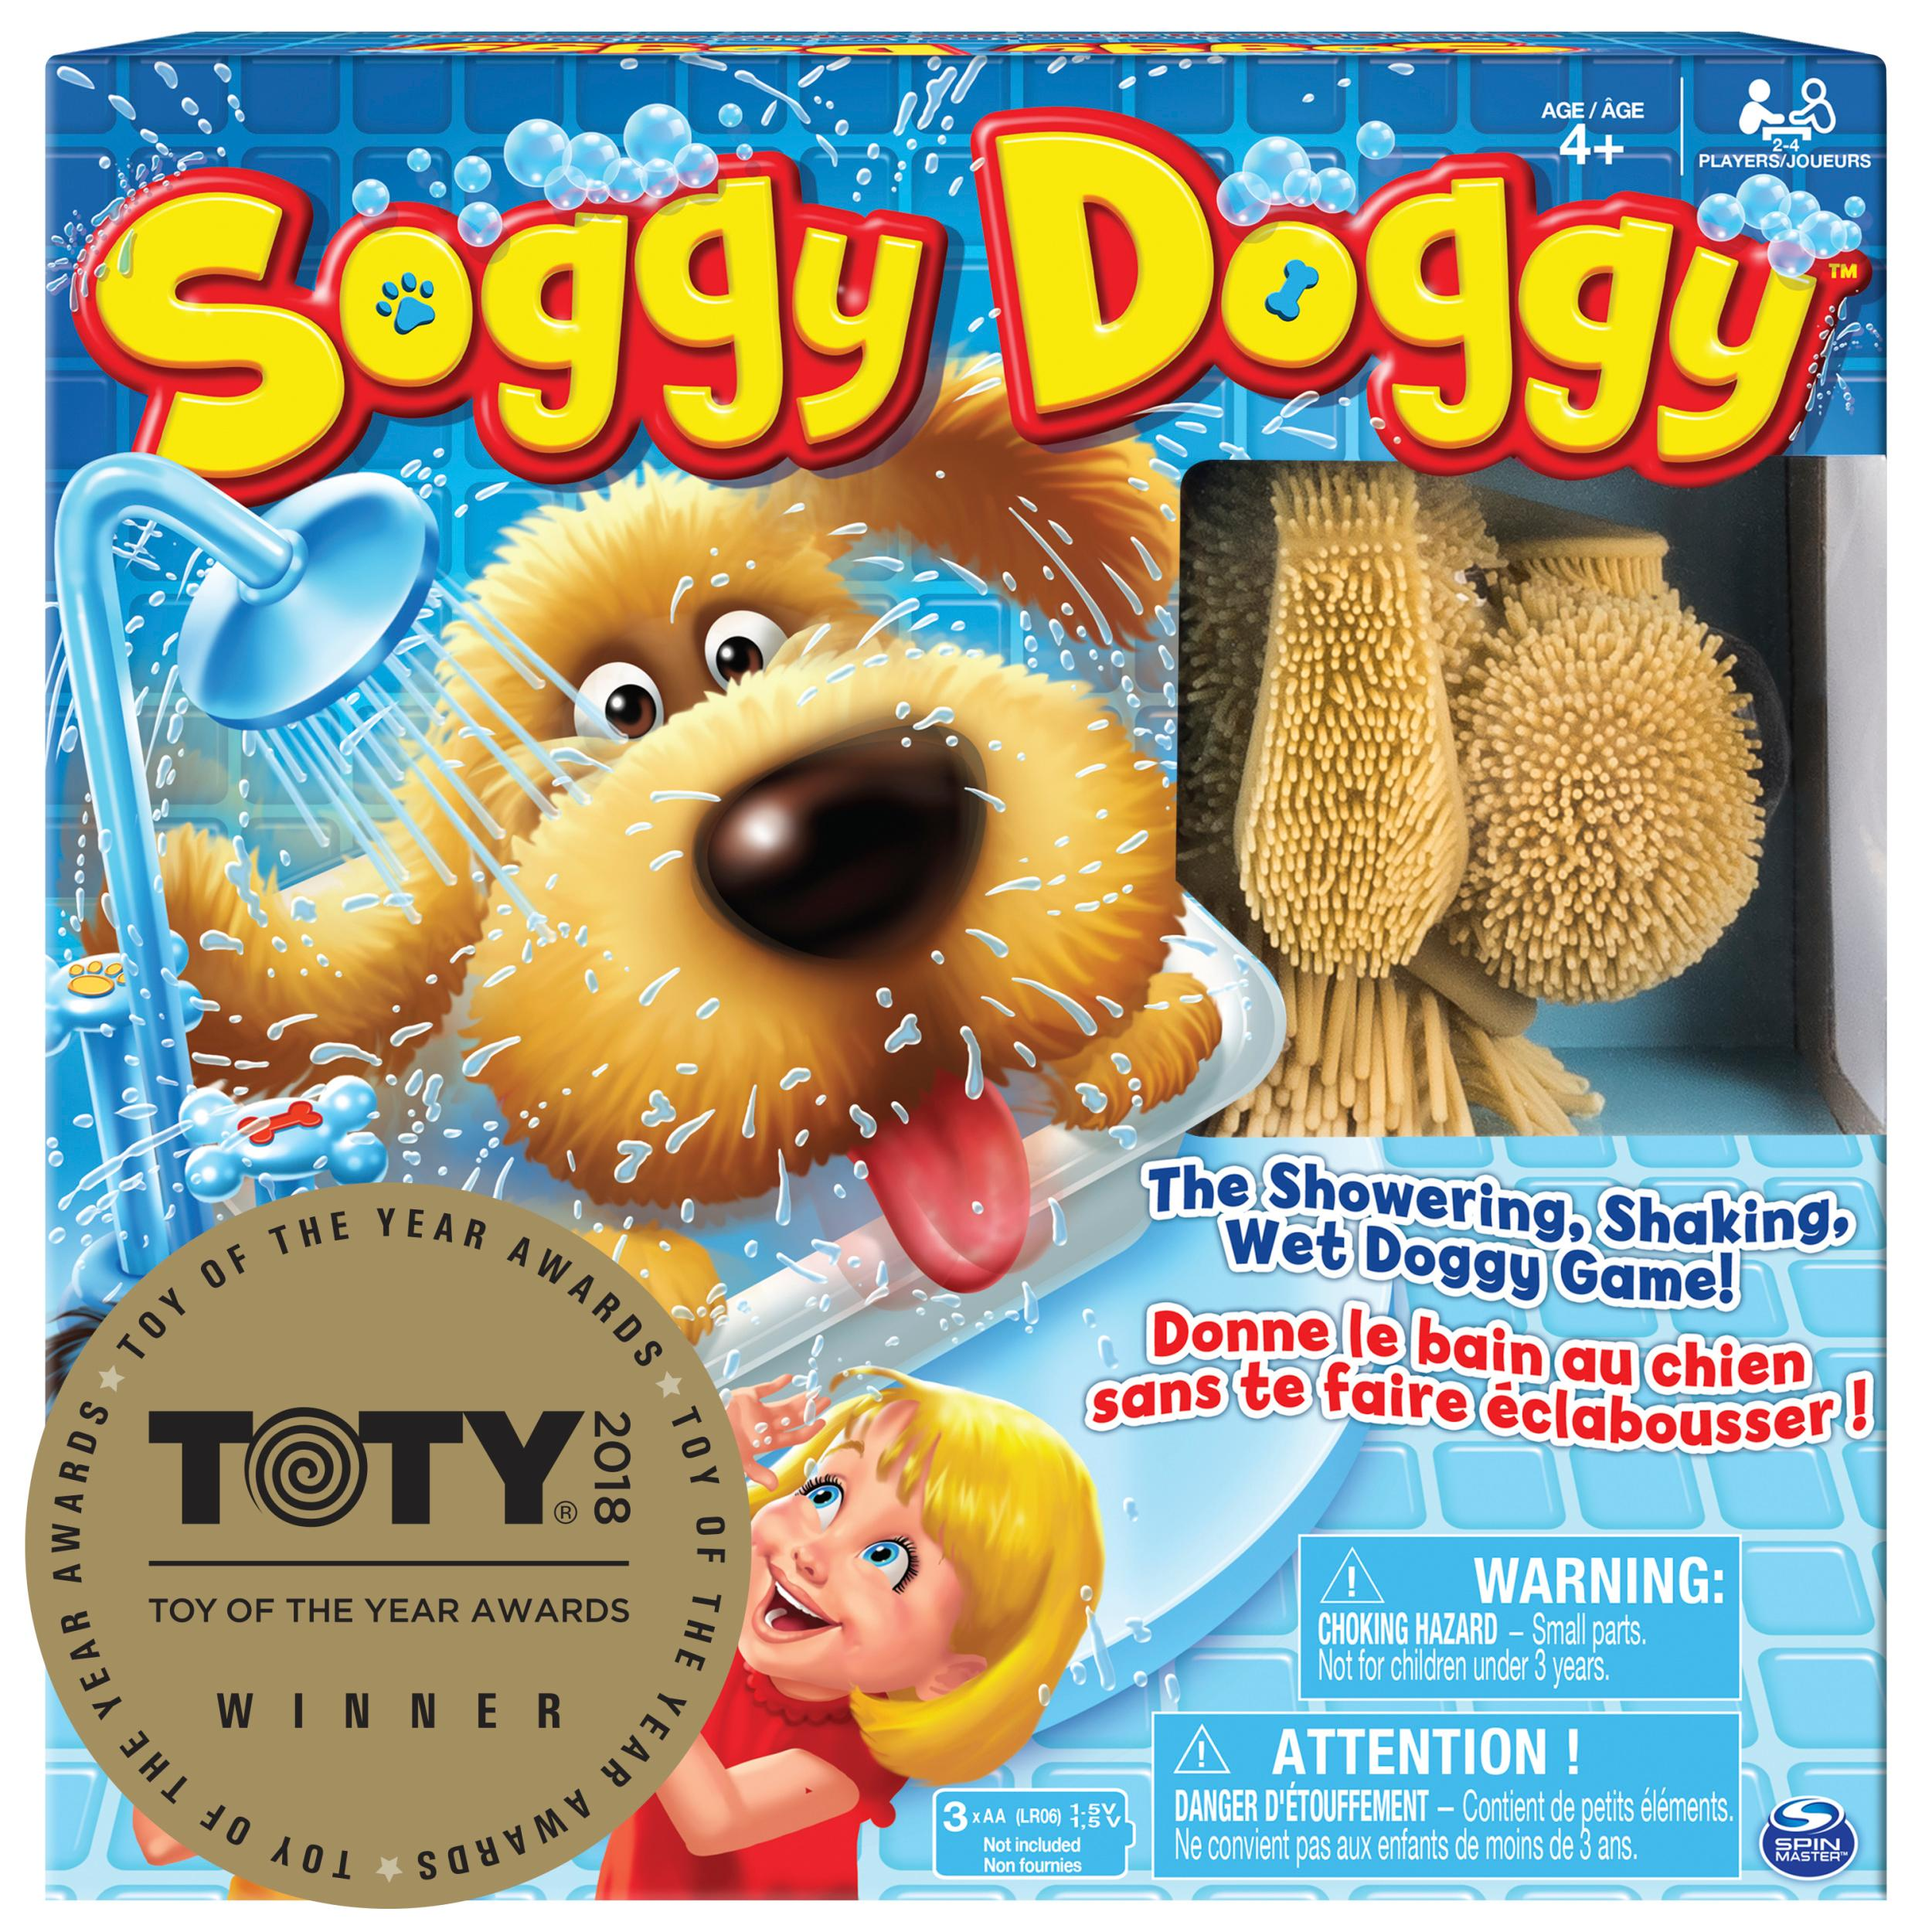 Board Games Toy : Amazon spin master soggy doggy board game toys games